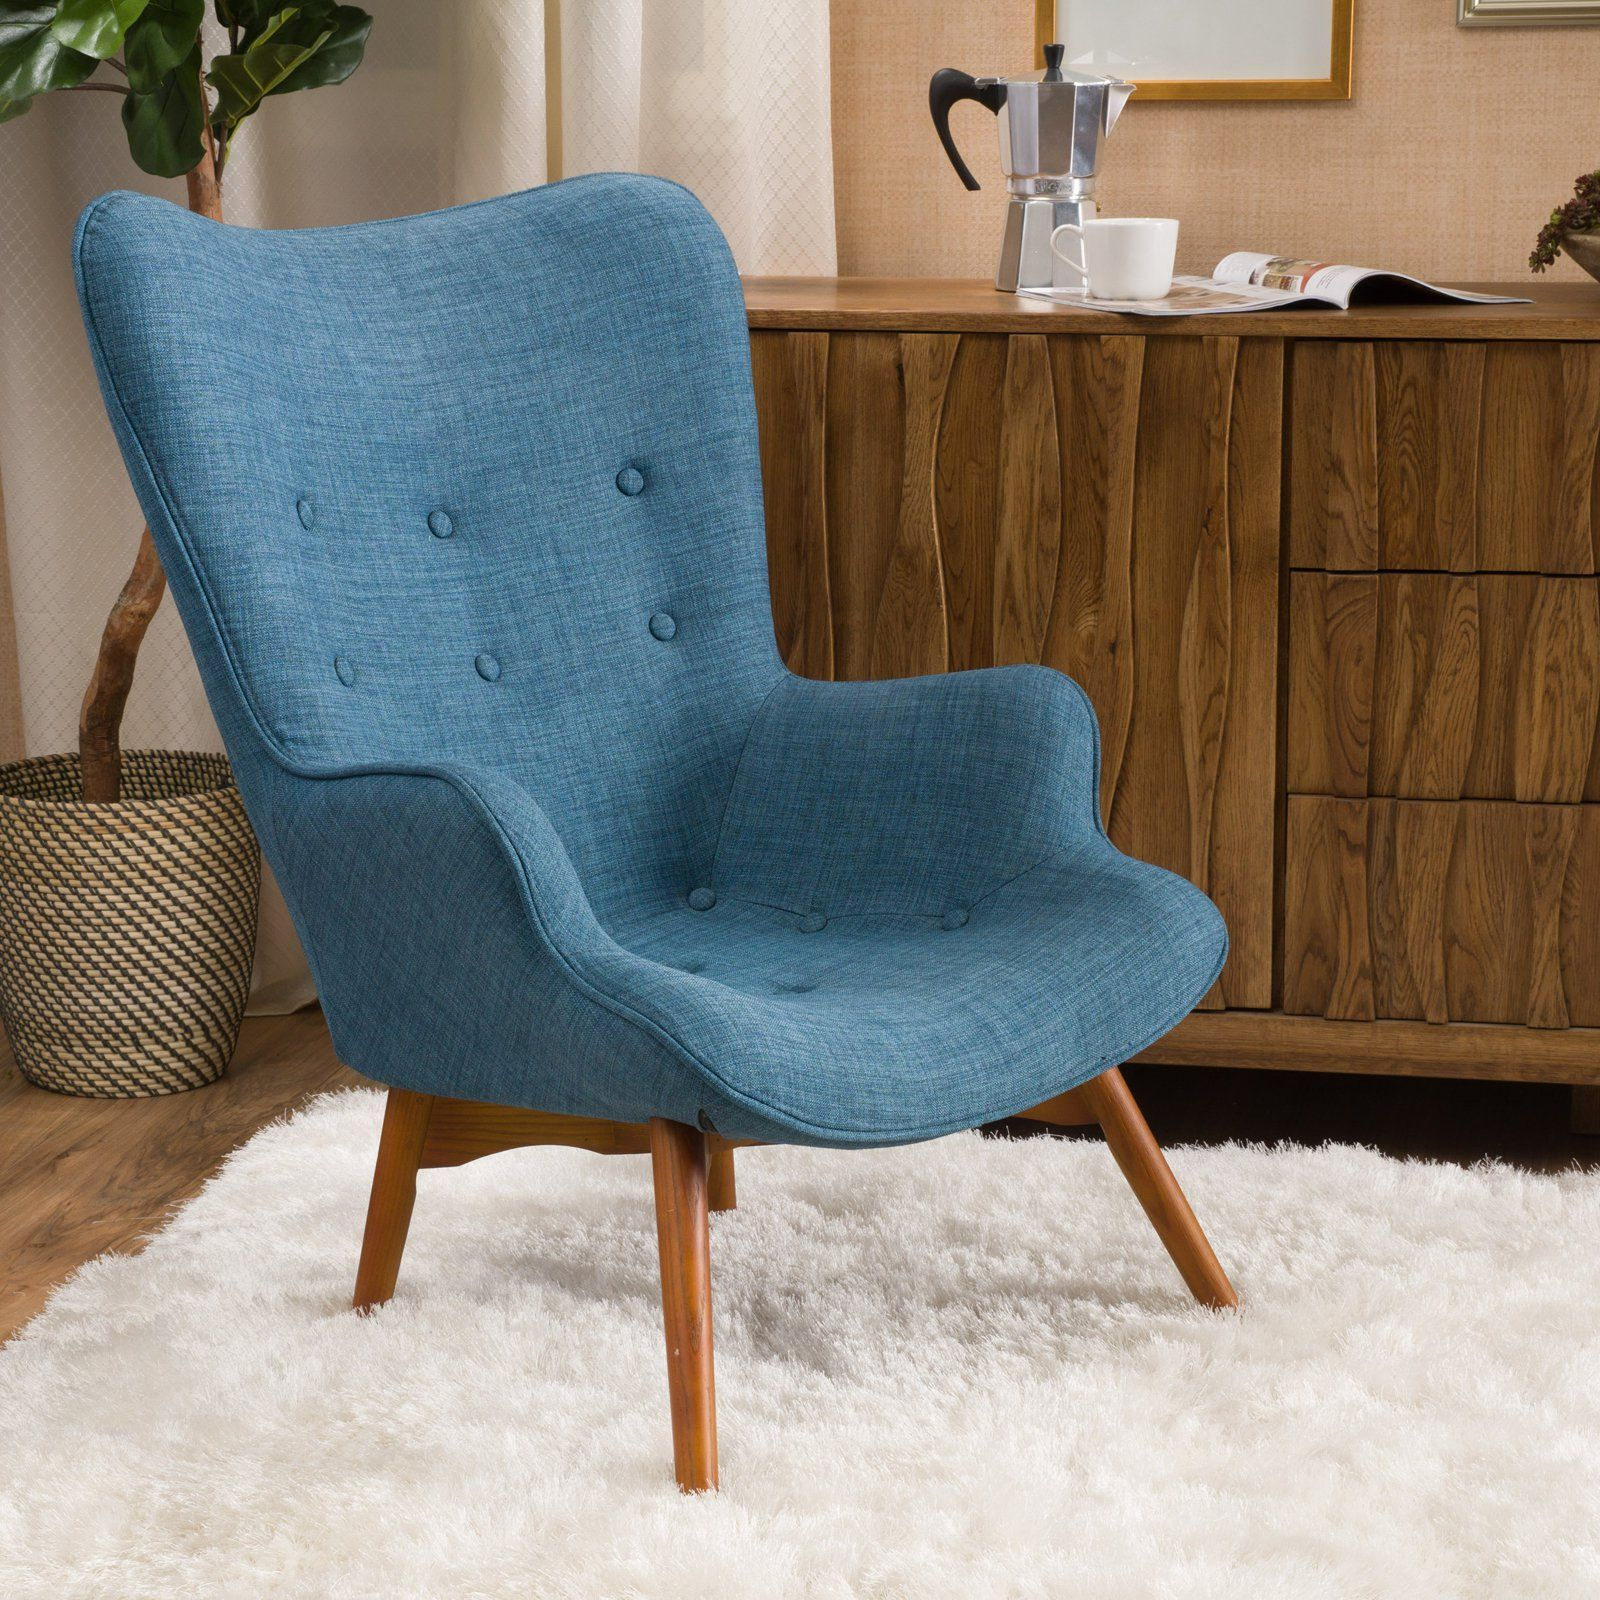 Astounding Best Selling Home Anders Mid Century Accent Chair 297013 Uwap Interior Chair Design Uwaporg